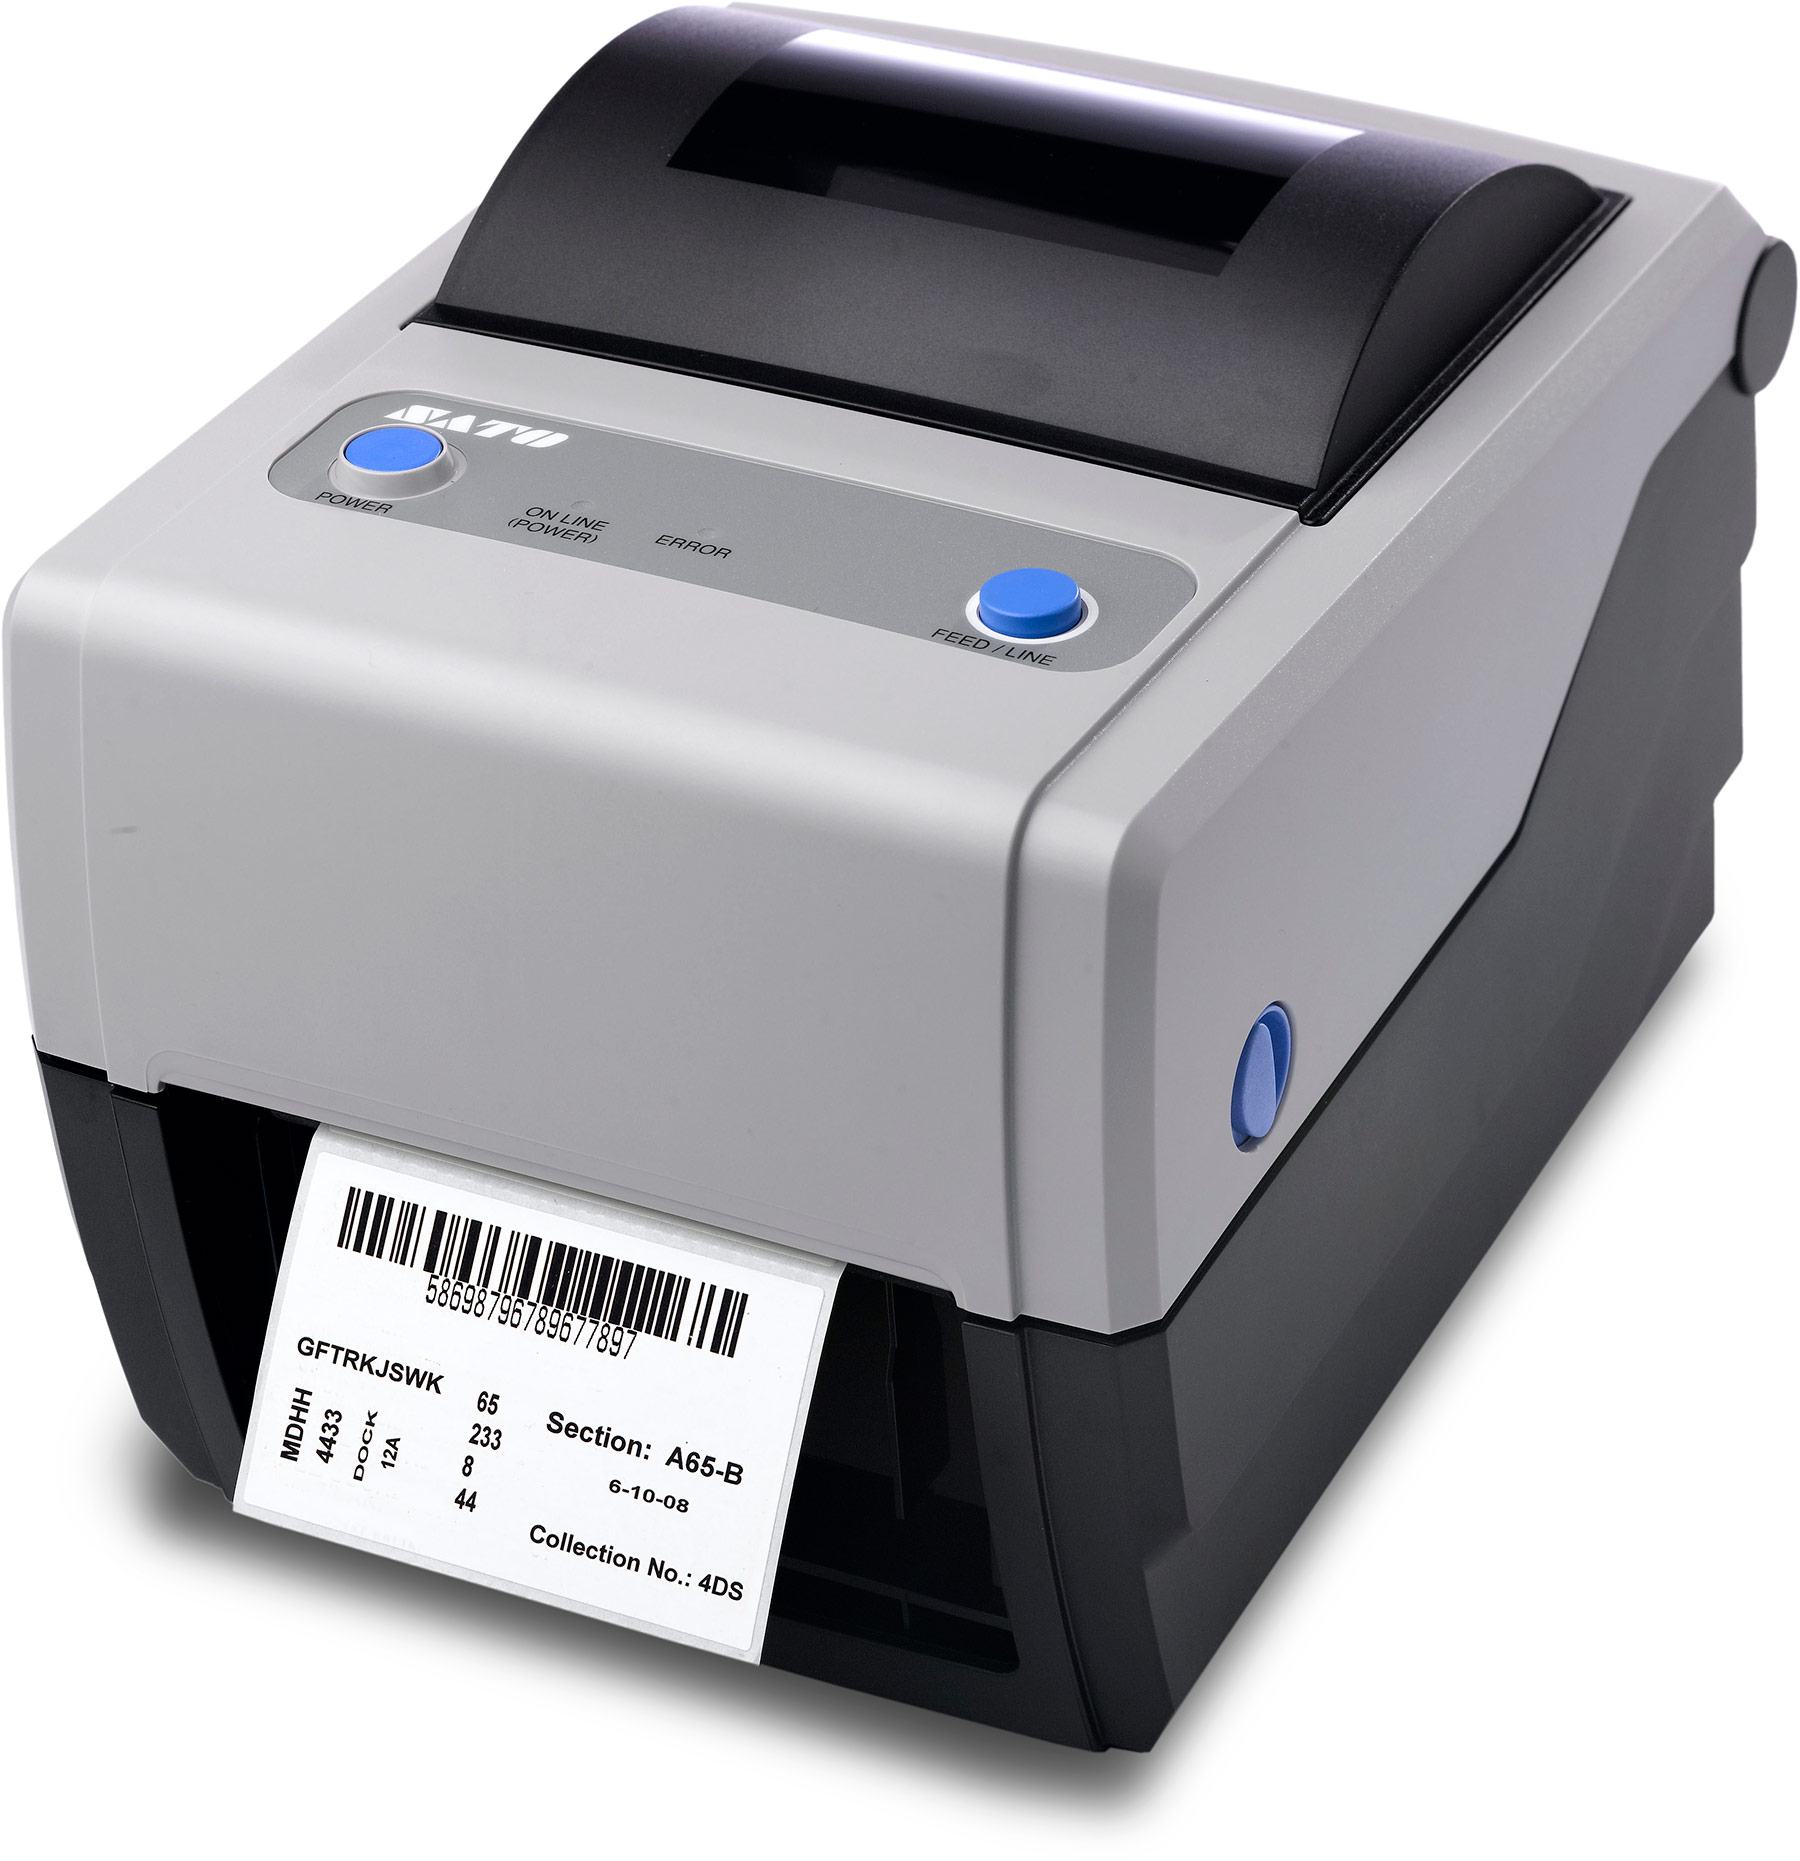 Sato CG Series Desktop Thermal Printer